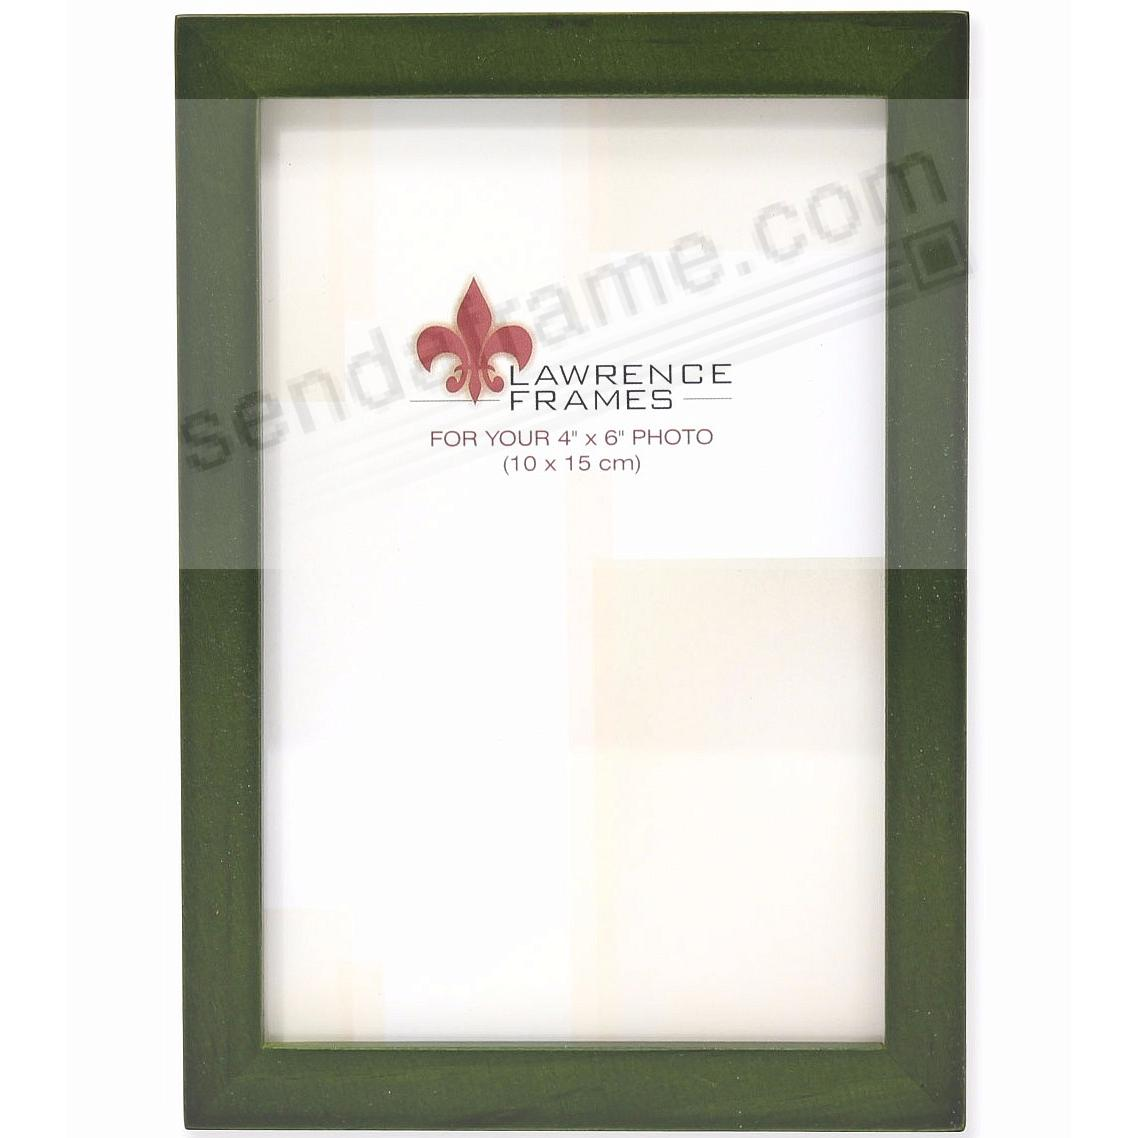 SQUARE CORNER Green Stain classic 4x6 frame by Lawrence Frames®